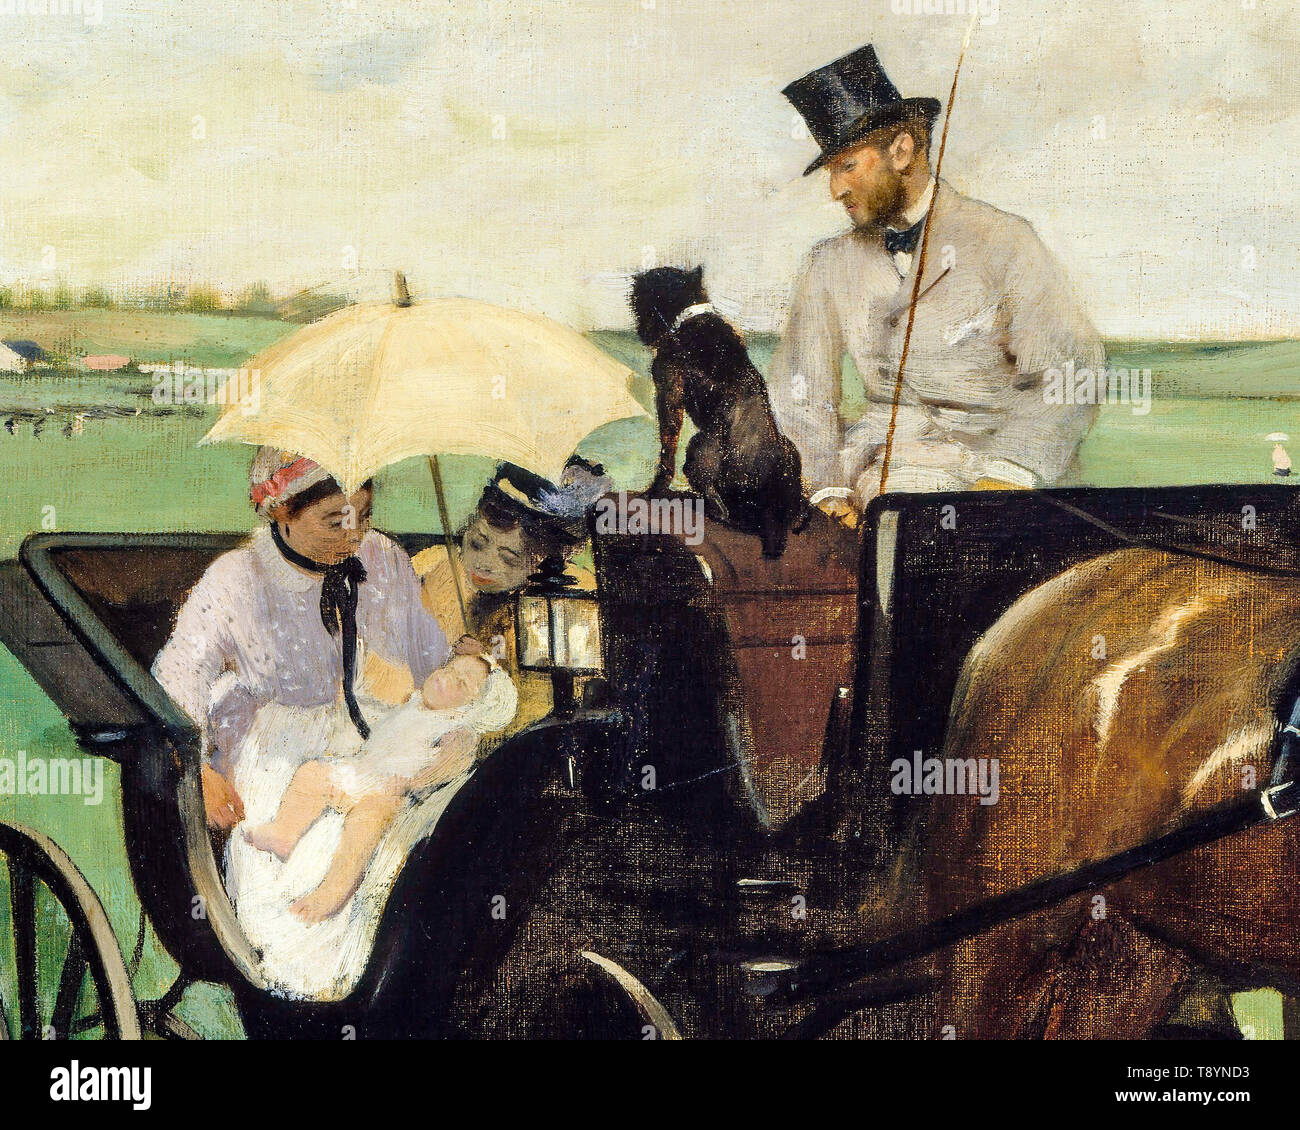 Edgar Degas, At the Races in the Countryside (detail), painting, 1869 - Stock Image